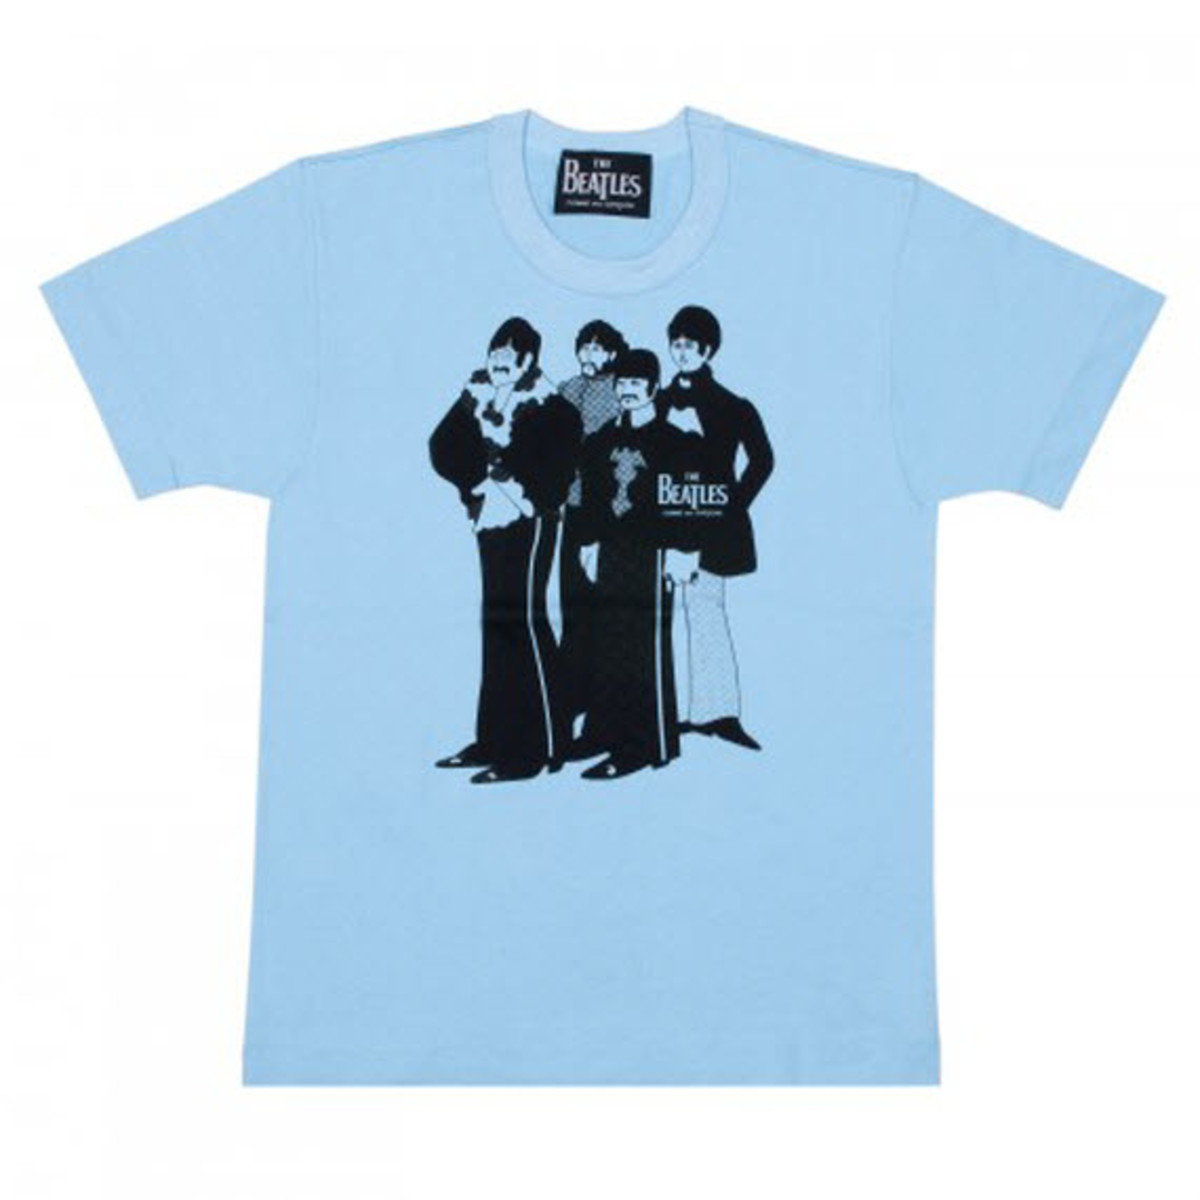 comme-des-garcons-x-the-beatles-the-beatles-springsummer-2013-capsule-collection-11